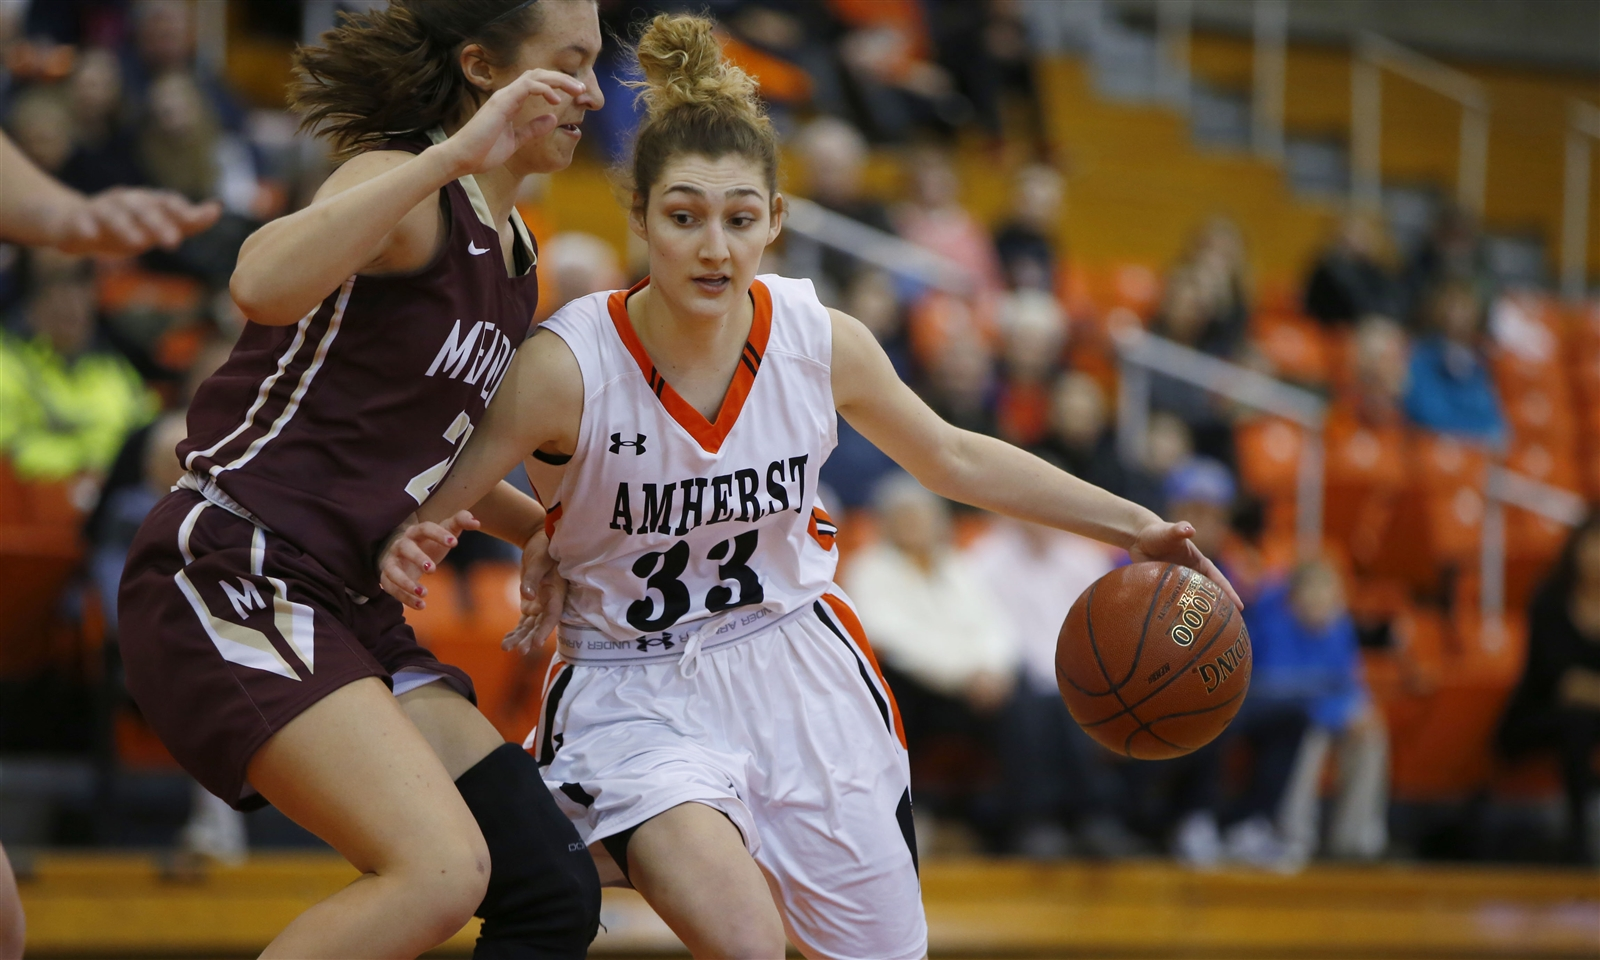 All-Western New York first-team selection Claire Wanzer averaged nearly 20 points per game in helping Amherst win the Section VI Class A championship. (Harry Scull Jr./Buffalo News)